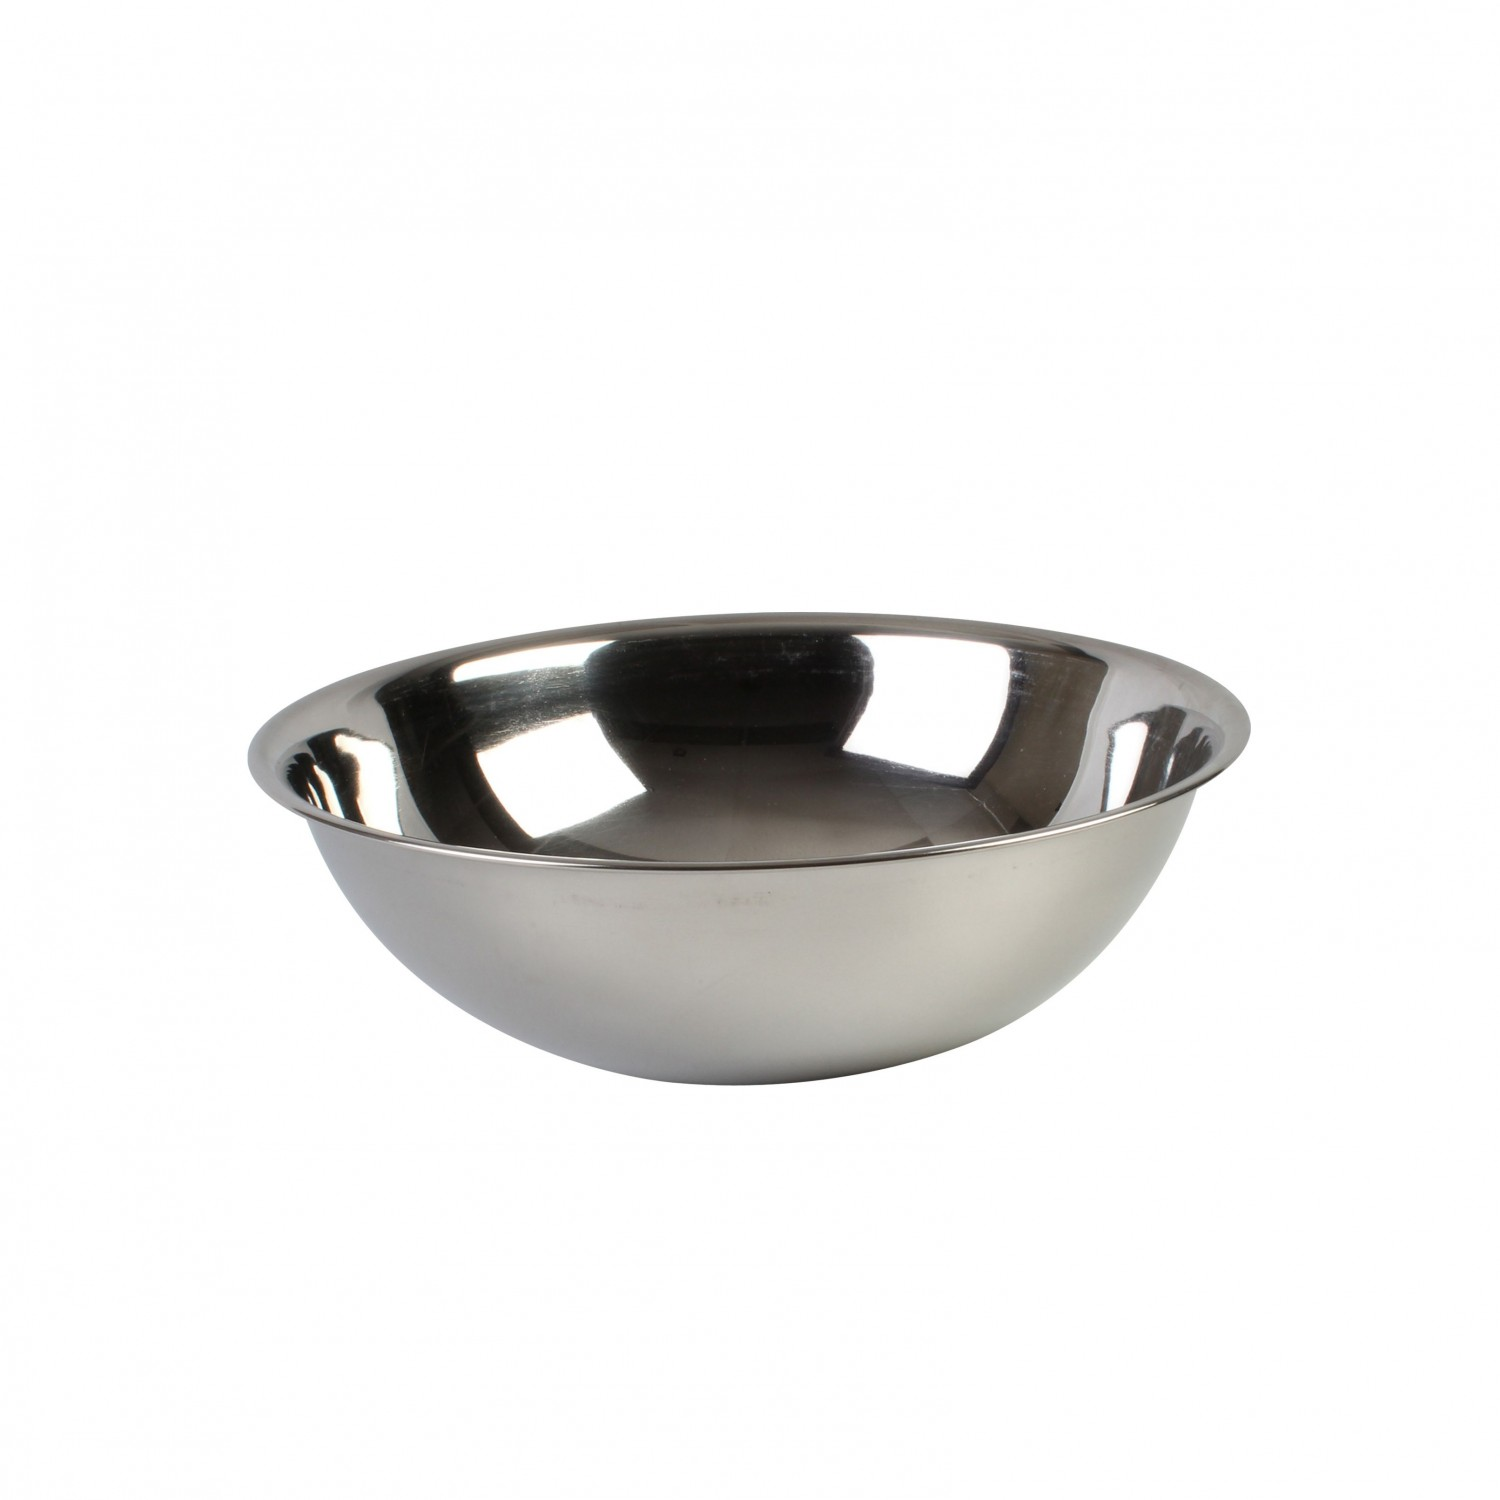 Thunder Group SLMB206 Heavy Duty Stainless Steel Mixing Bowl 8 Qt. - 1 doz